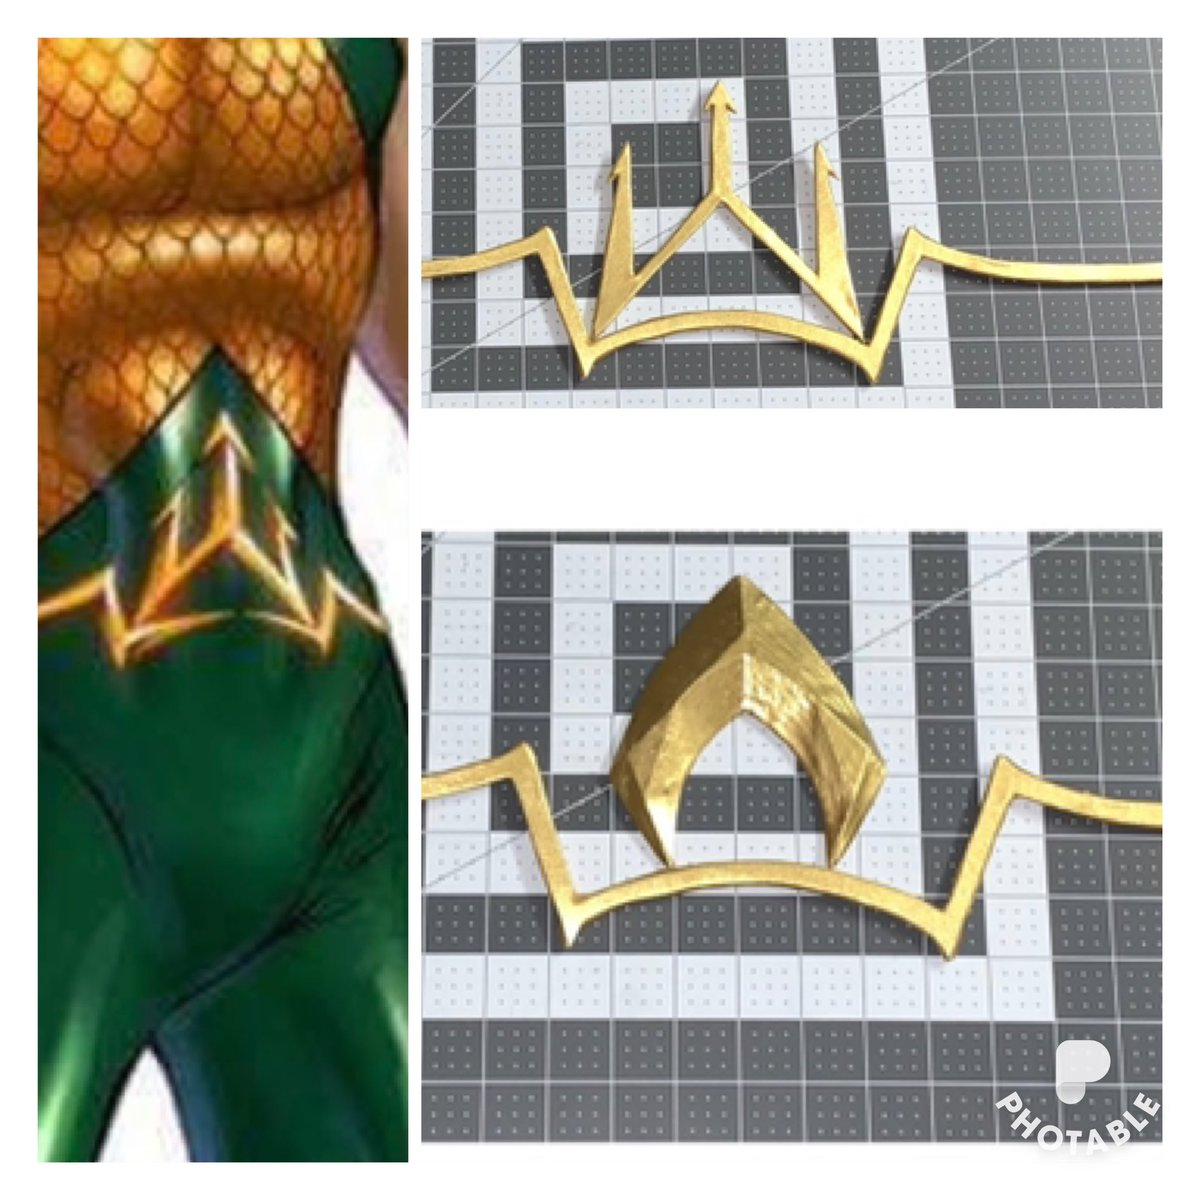 #Aquaman #belt w/ 2 symbol options .  FOLLOW ME ON IG, FB, &TWITTER.Costumes/Custom Apparel by Dean's Lyst #designer #WIP #arthurcurry #justiceleague  #atlantean #atlantis #superhero #dc #dccomics #commission #cosplays #cosplay #smarterthanitseams #custommade #cosplayyourway